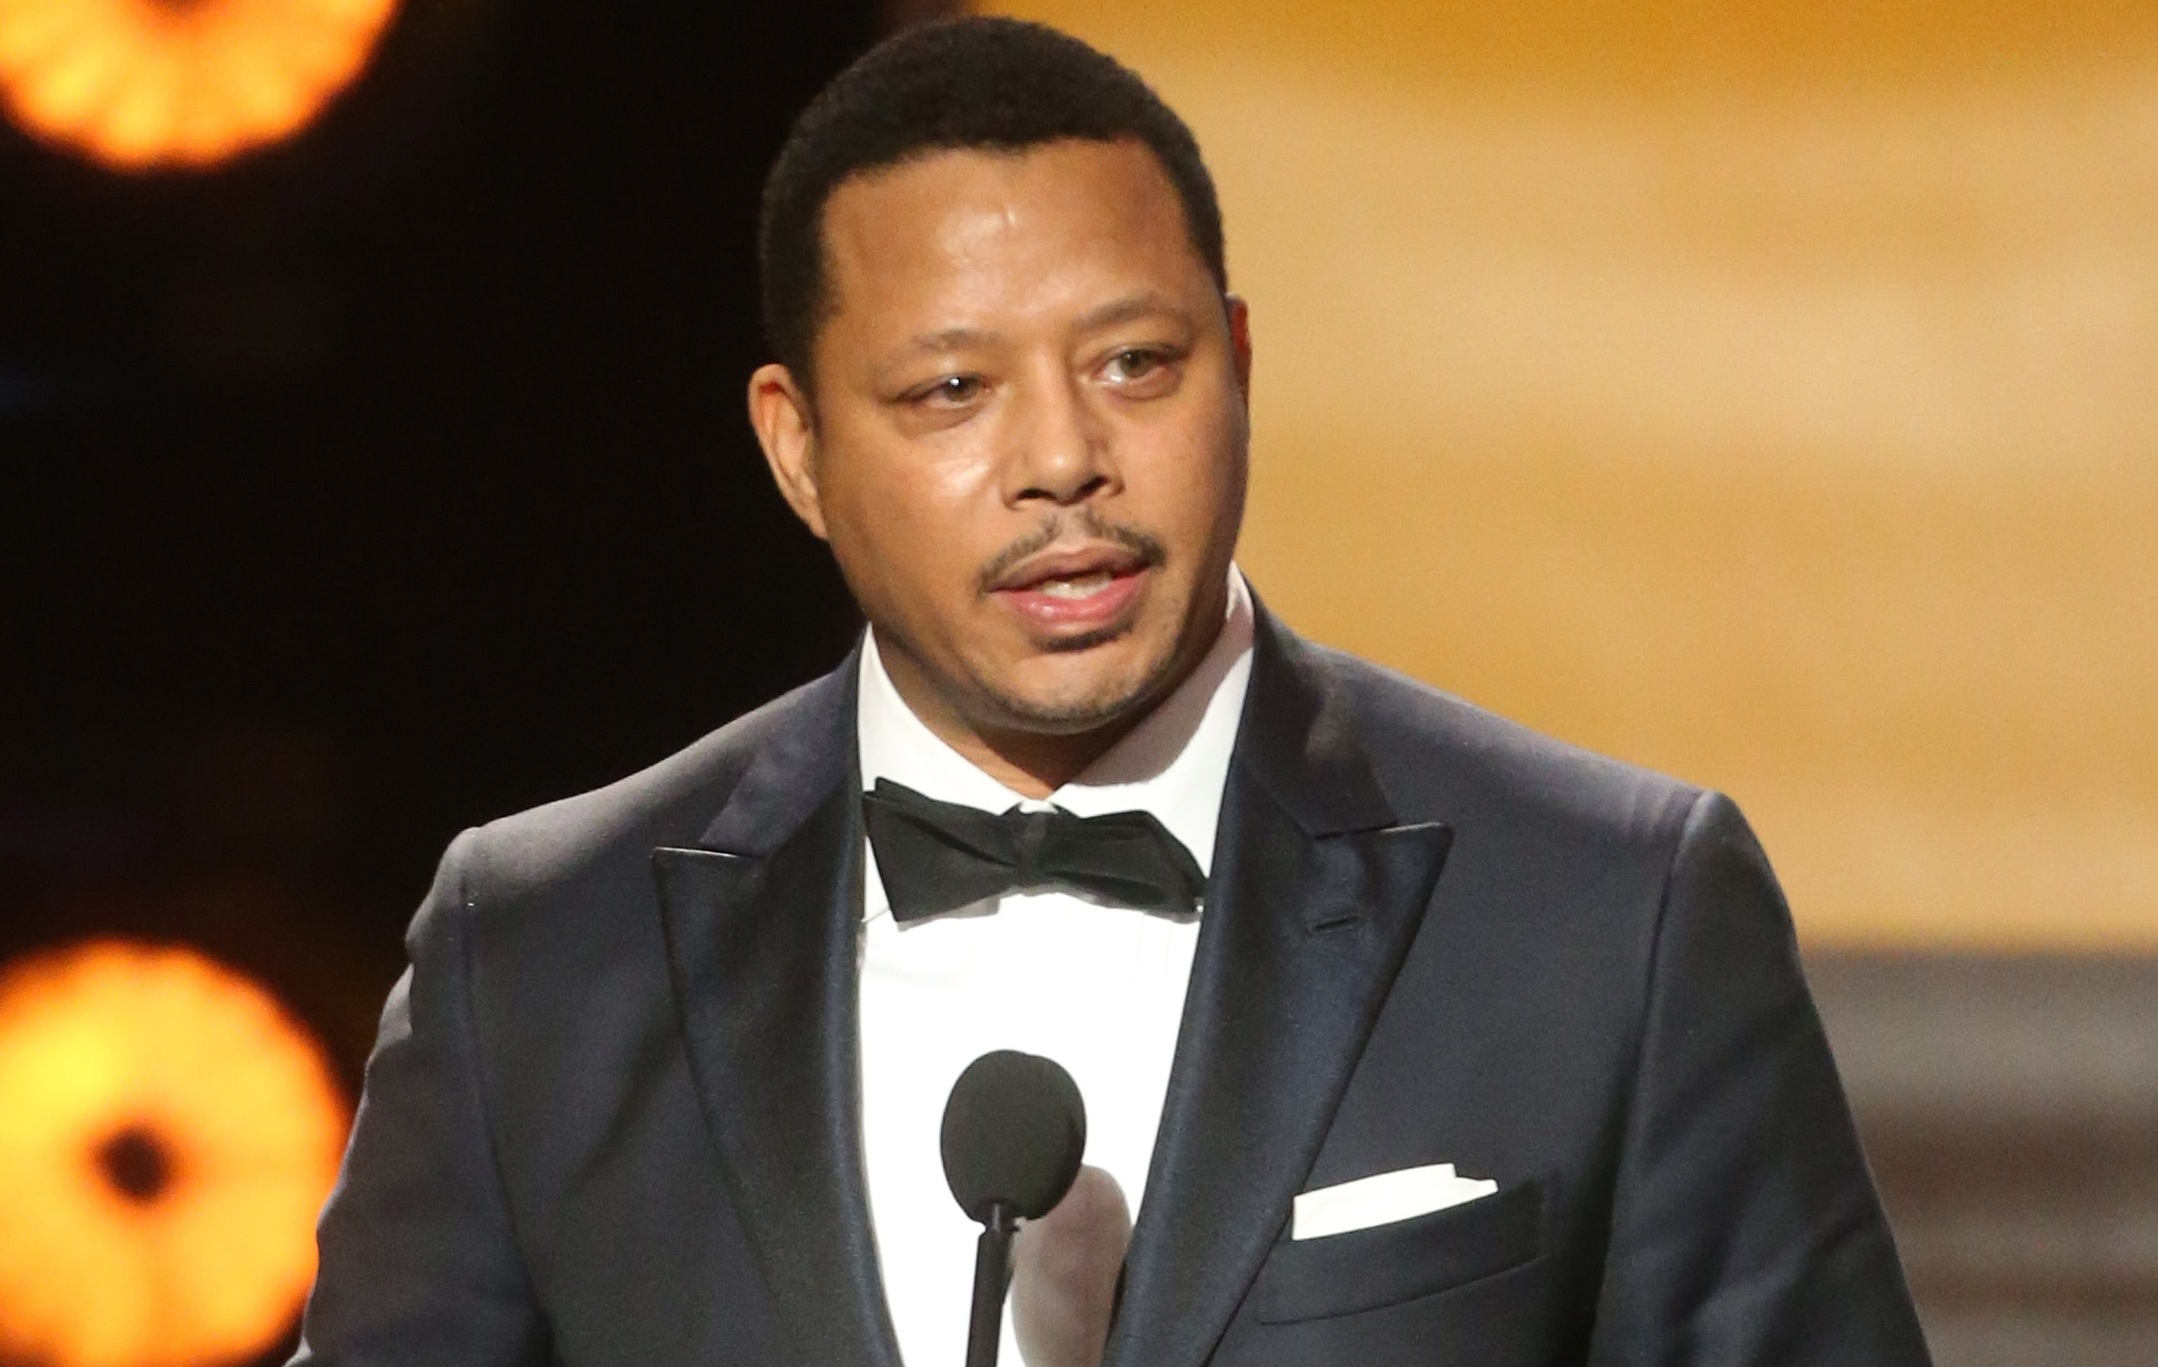 "PASADENA, CA - FEBRUARY 05:  Actor Terrence Howard accepts award for Outstanding Actor in a Drama Series for ""Empire' onstage during the 47th NAACP Image Awards presented by TV One at Pasadena Civic Auditorium on February 5, 2016 in Pasadena, California.  (Photo by Frederick M. Brown/Getty Images for NAACP Image Awards)"